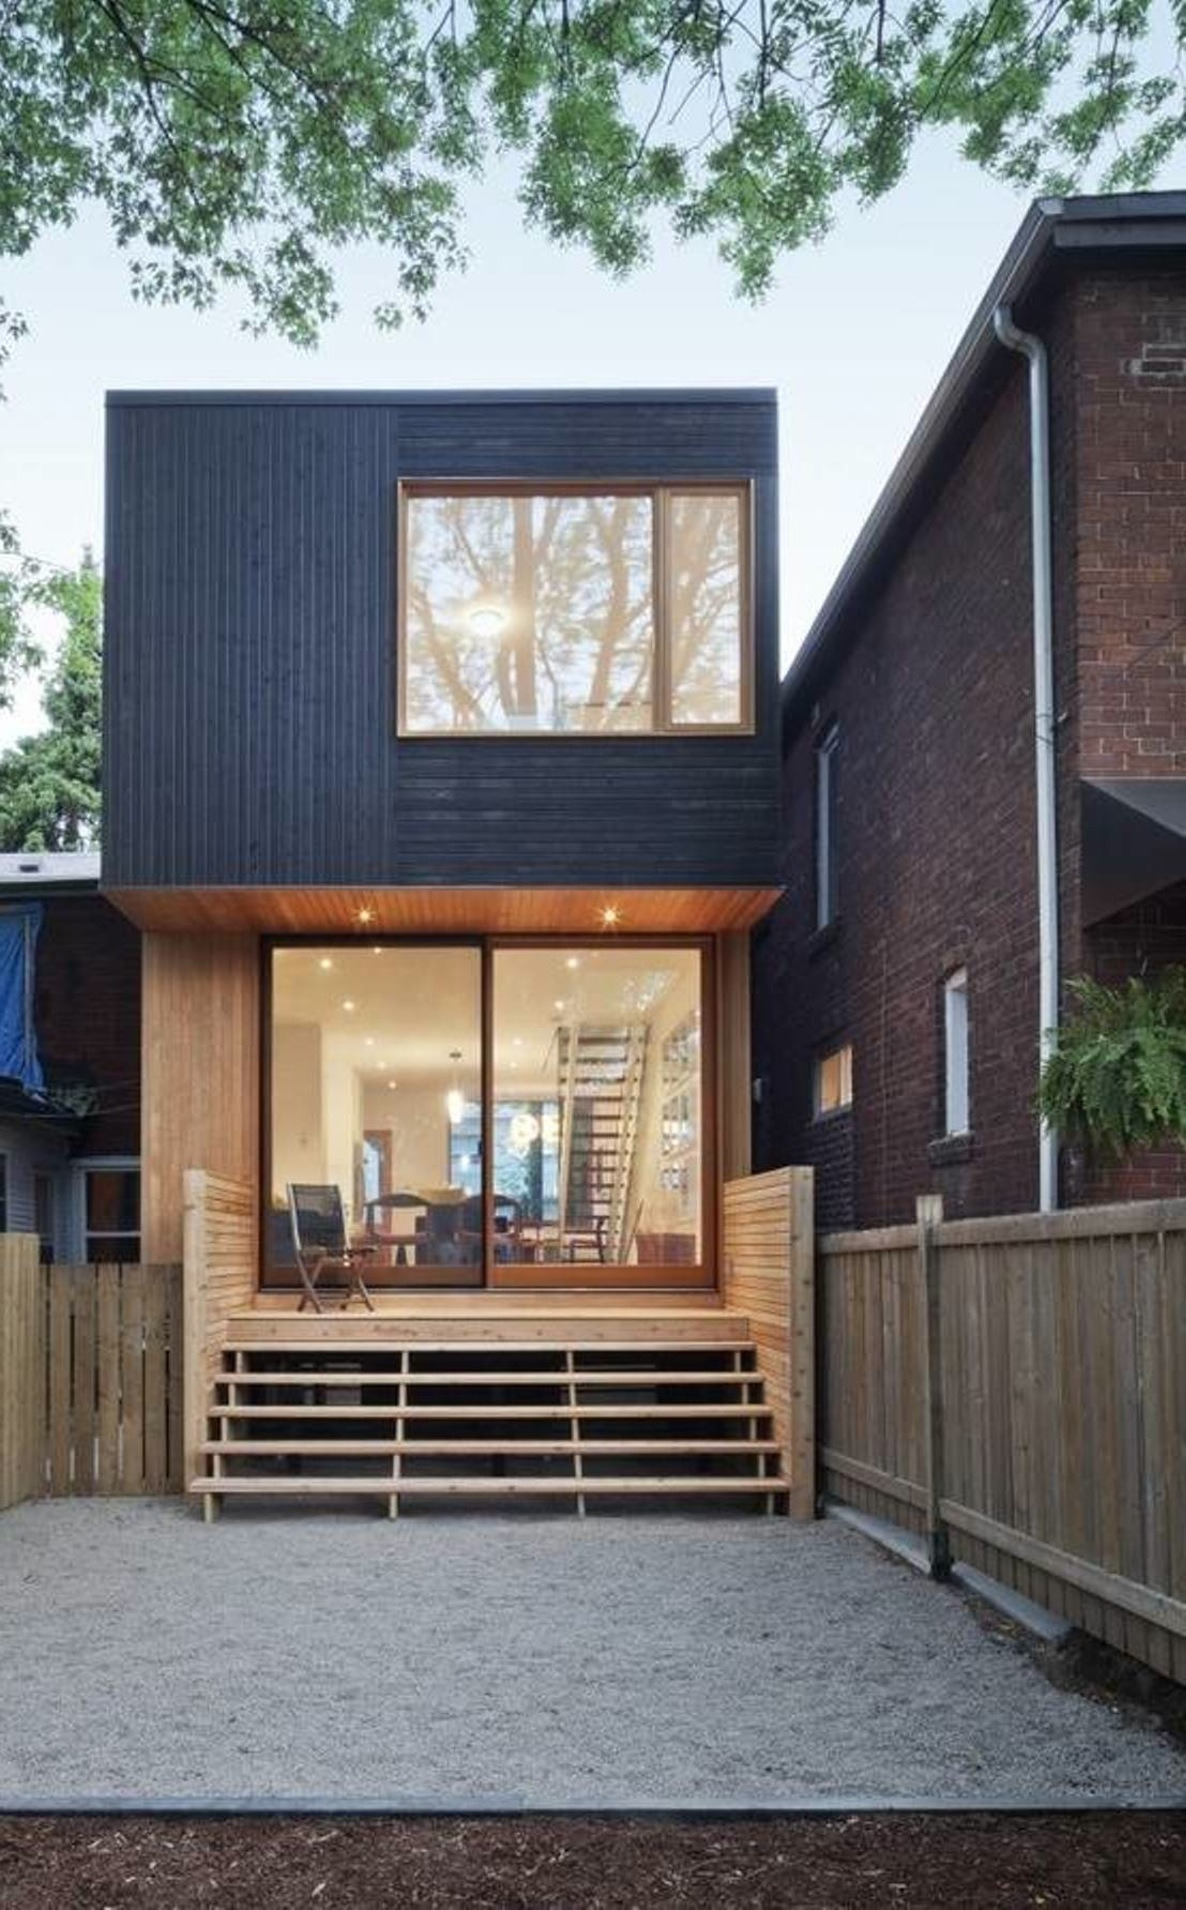 Inexpensive Homes to Build Lovely Affordable Modern Prefab Homes Good Apartment Build to Save